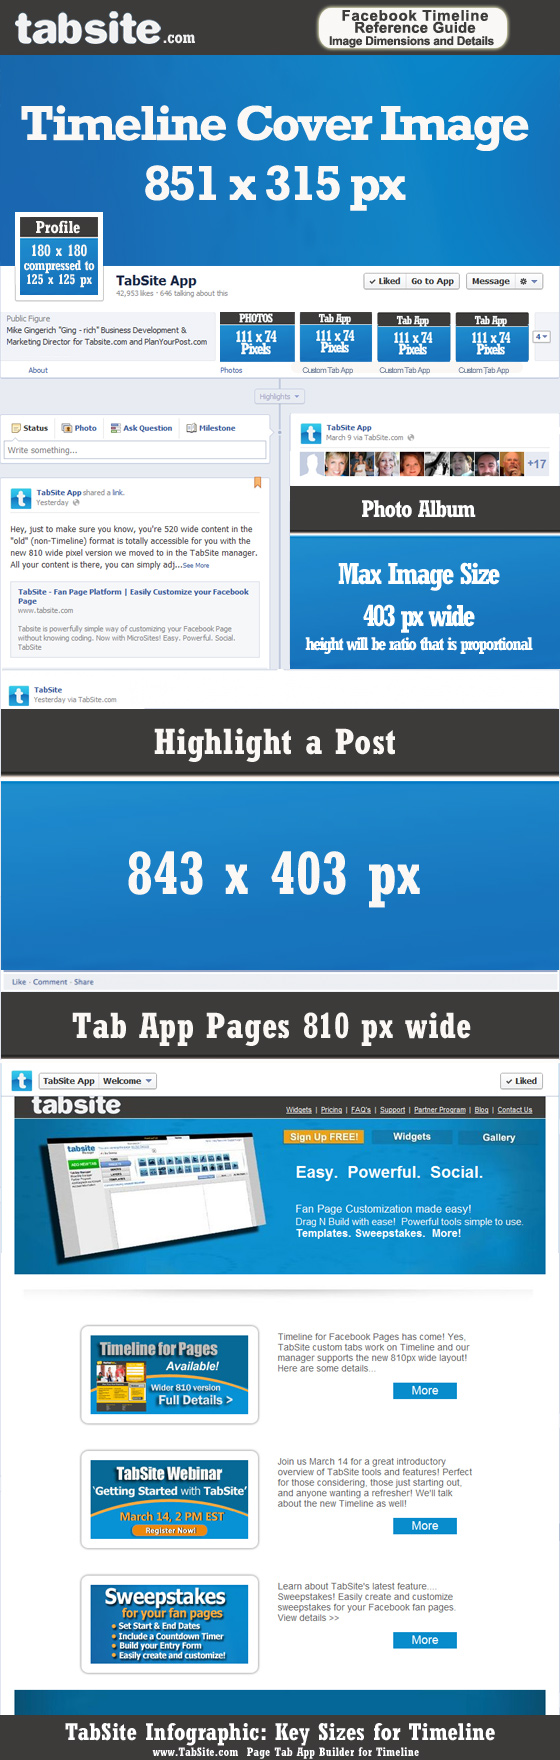 tabsite timeline infographic